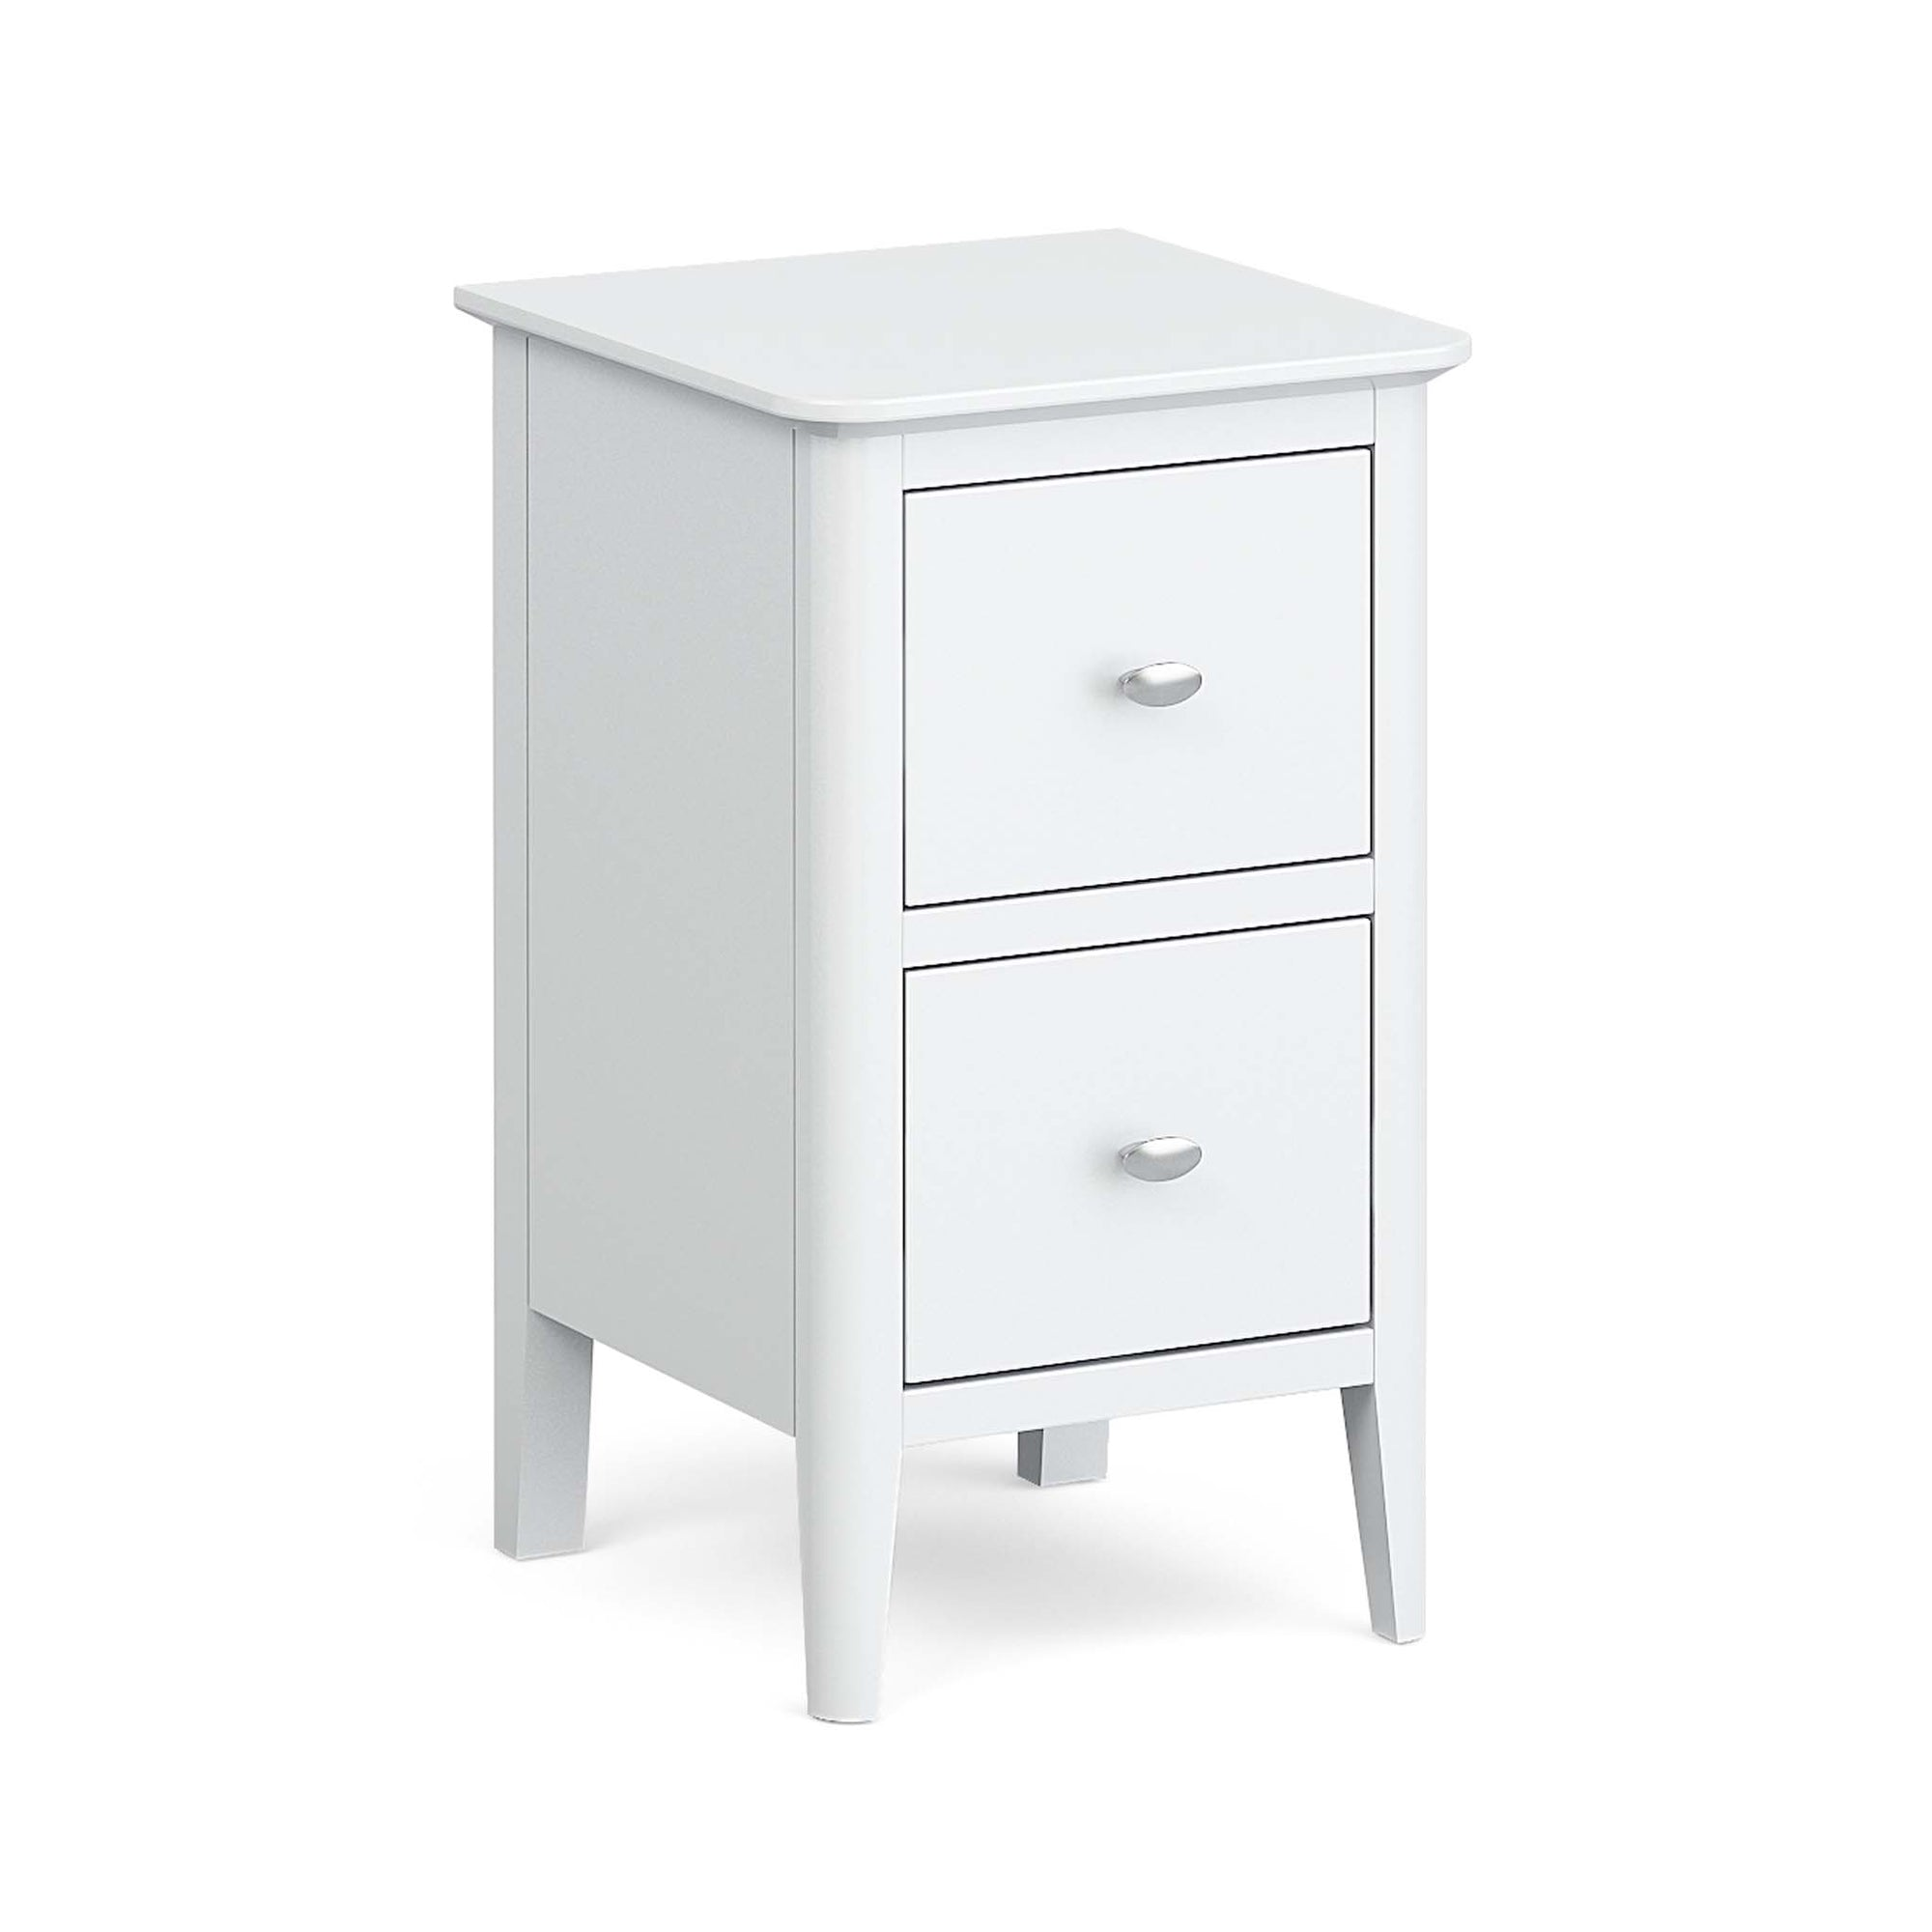 Chester White Narrow Bedside Drawers Table by Roseland Furniture